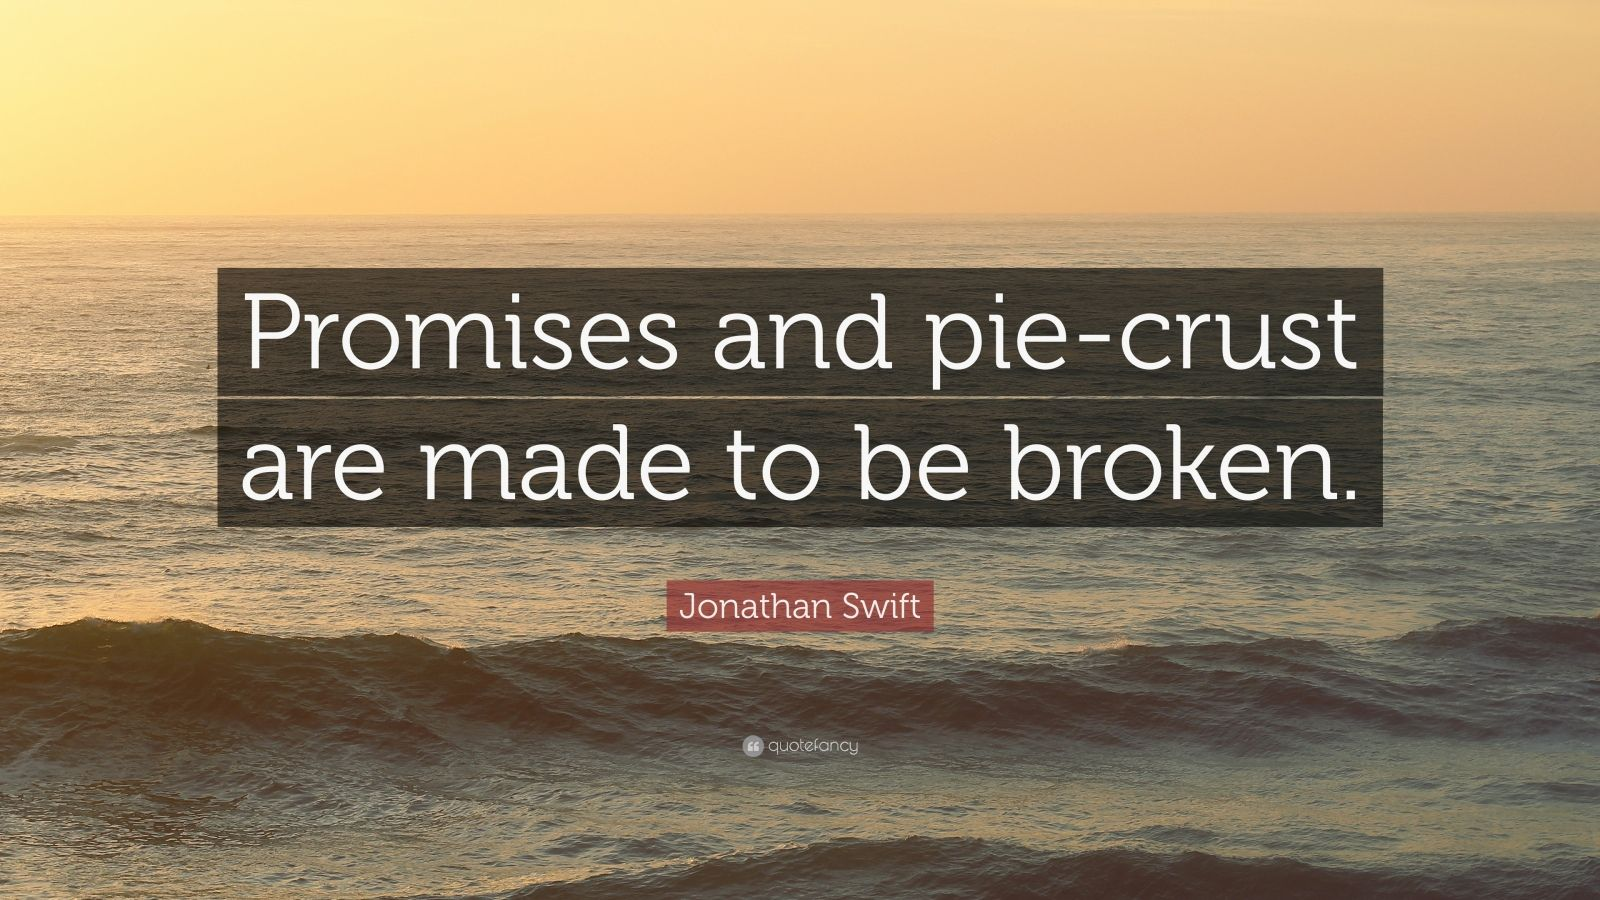 """Jonathan Swift Quote: """"Promises and pie-crust are made to be broken."""""""